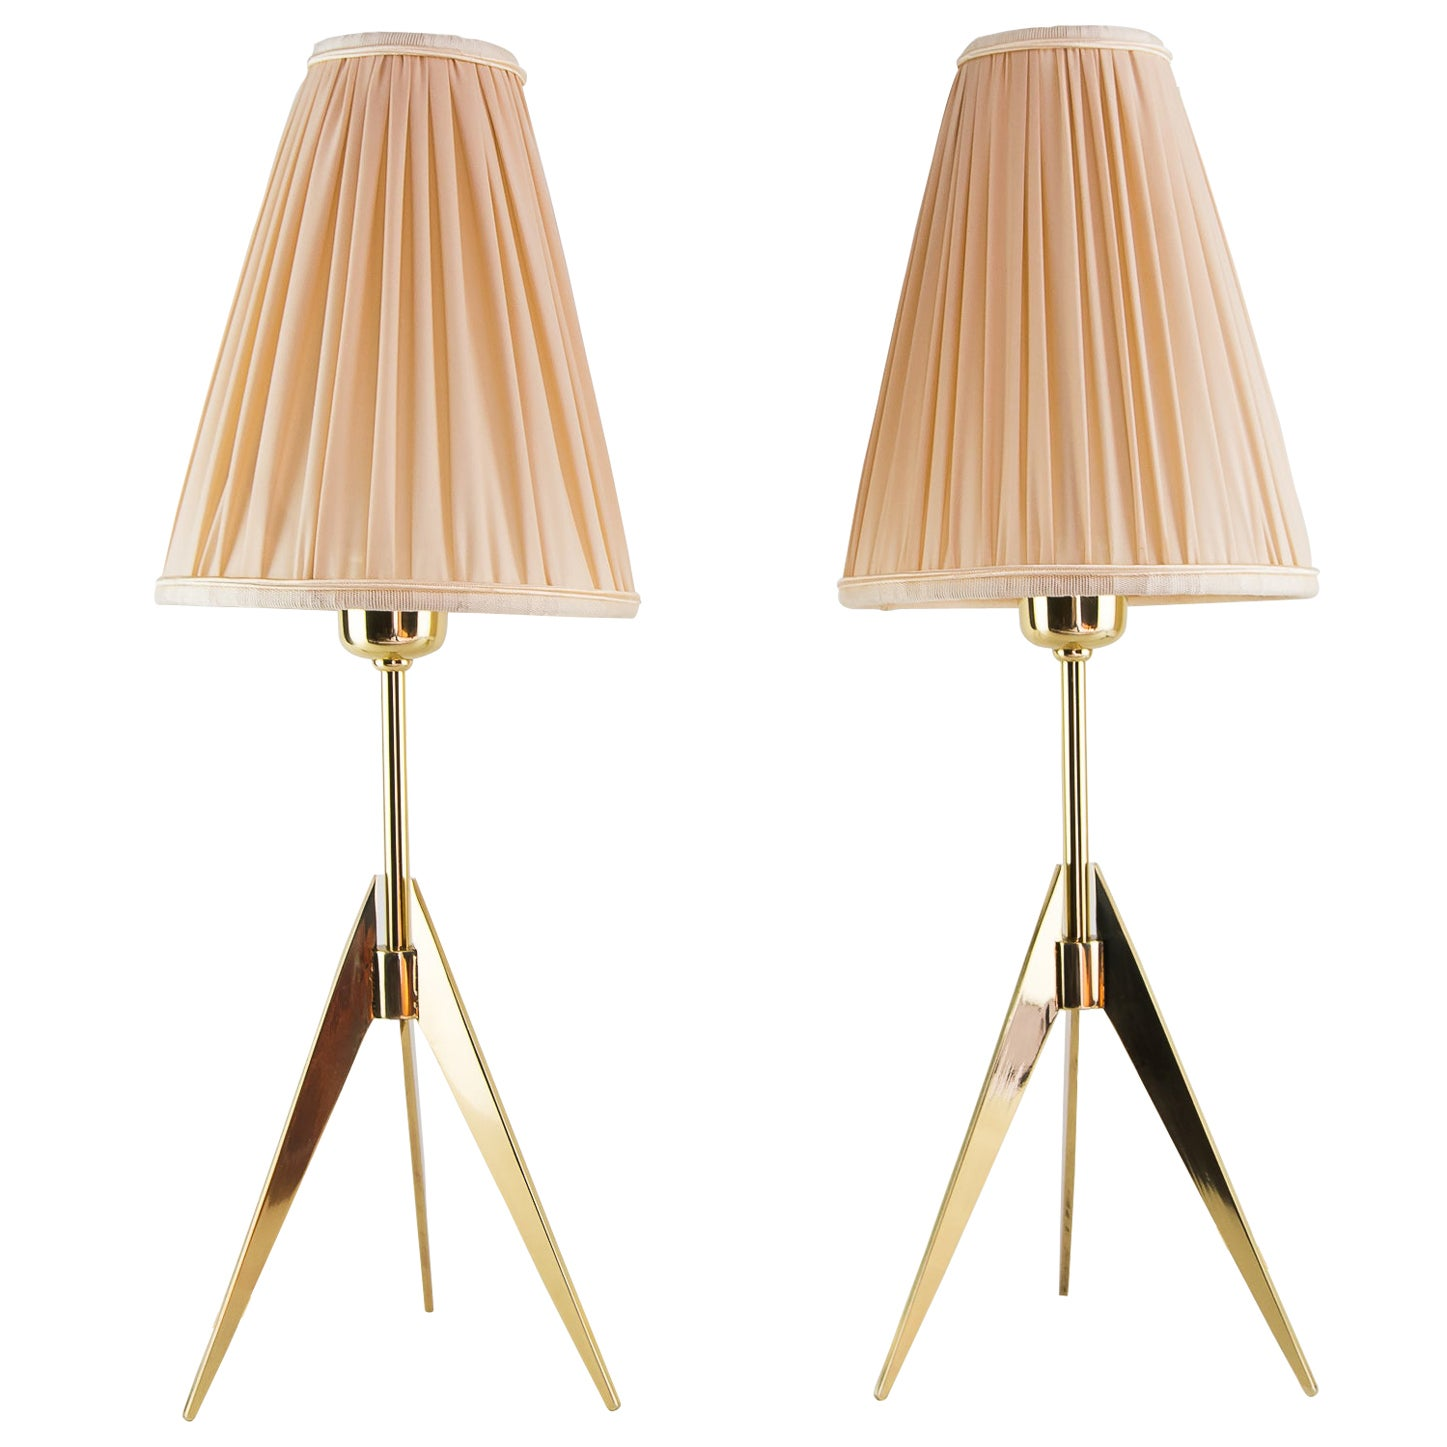 Two Kalmar Table Lamps, with Fabric Shades, circa 1950s